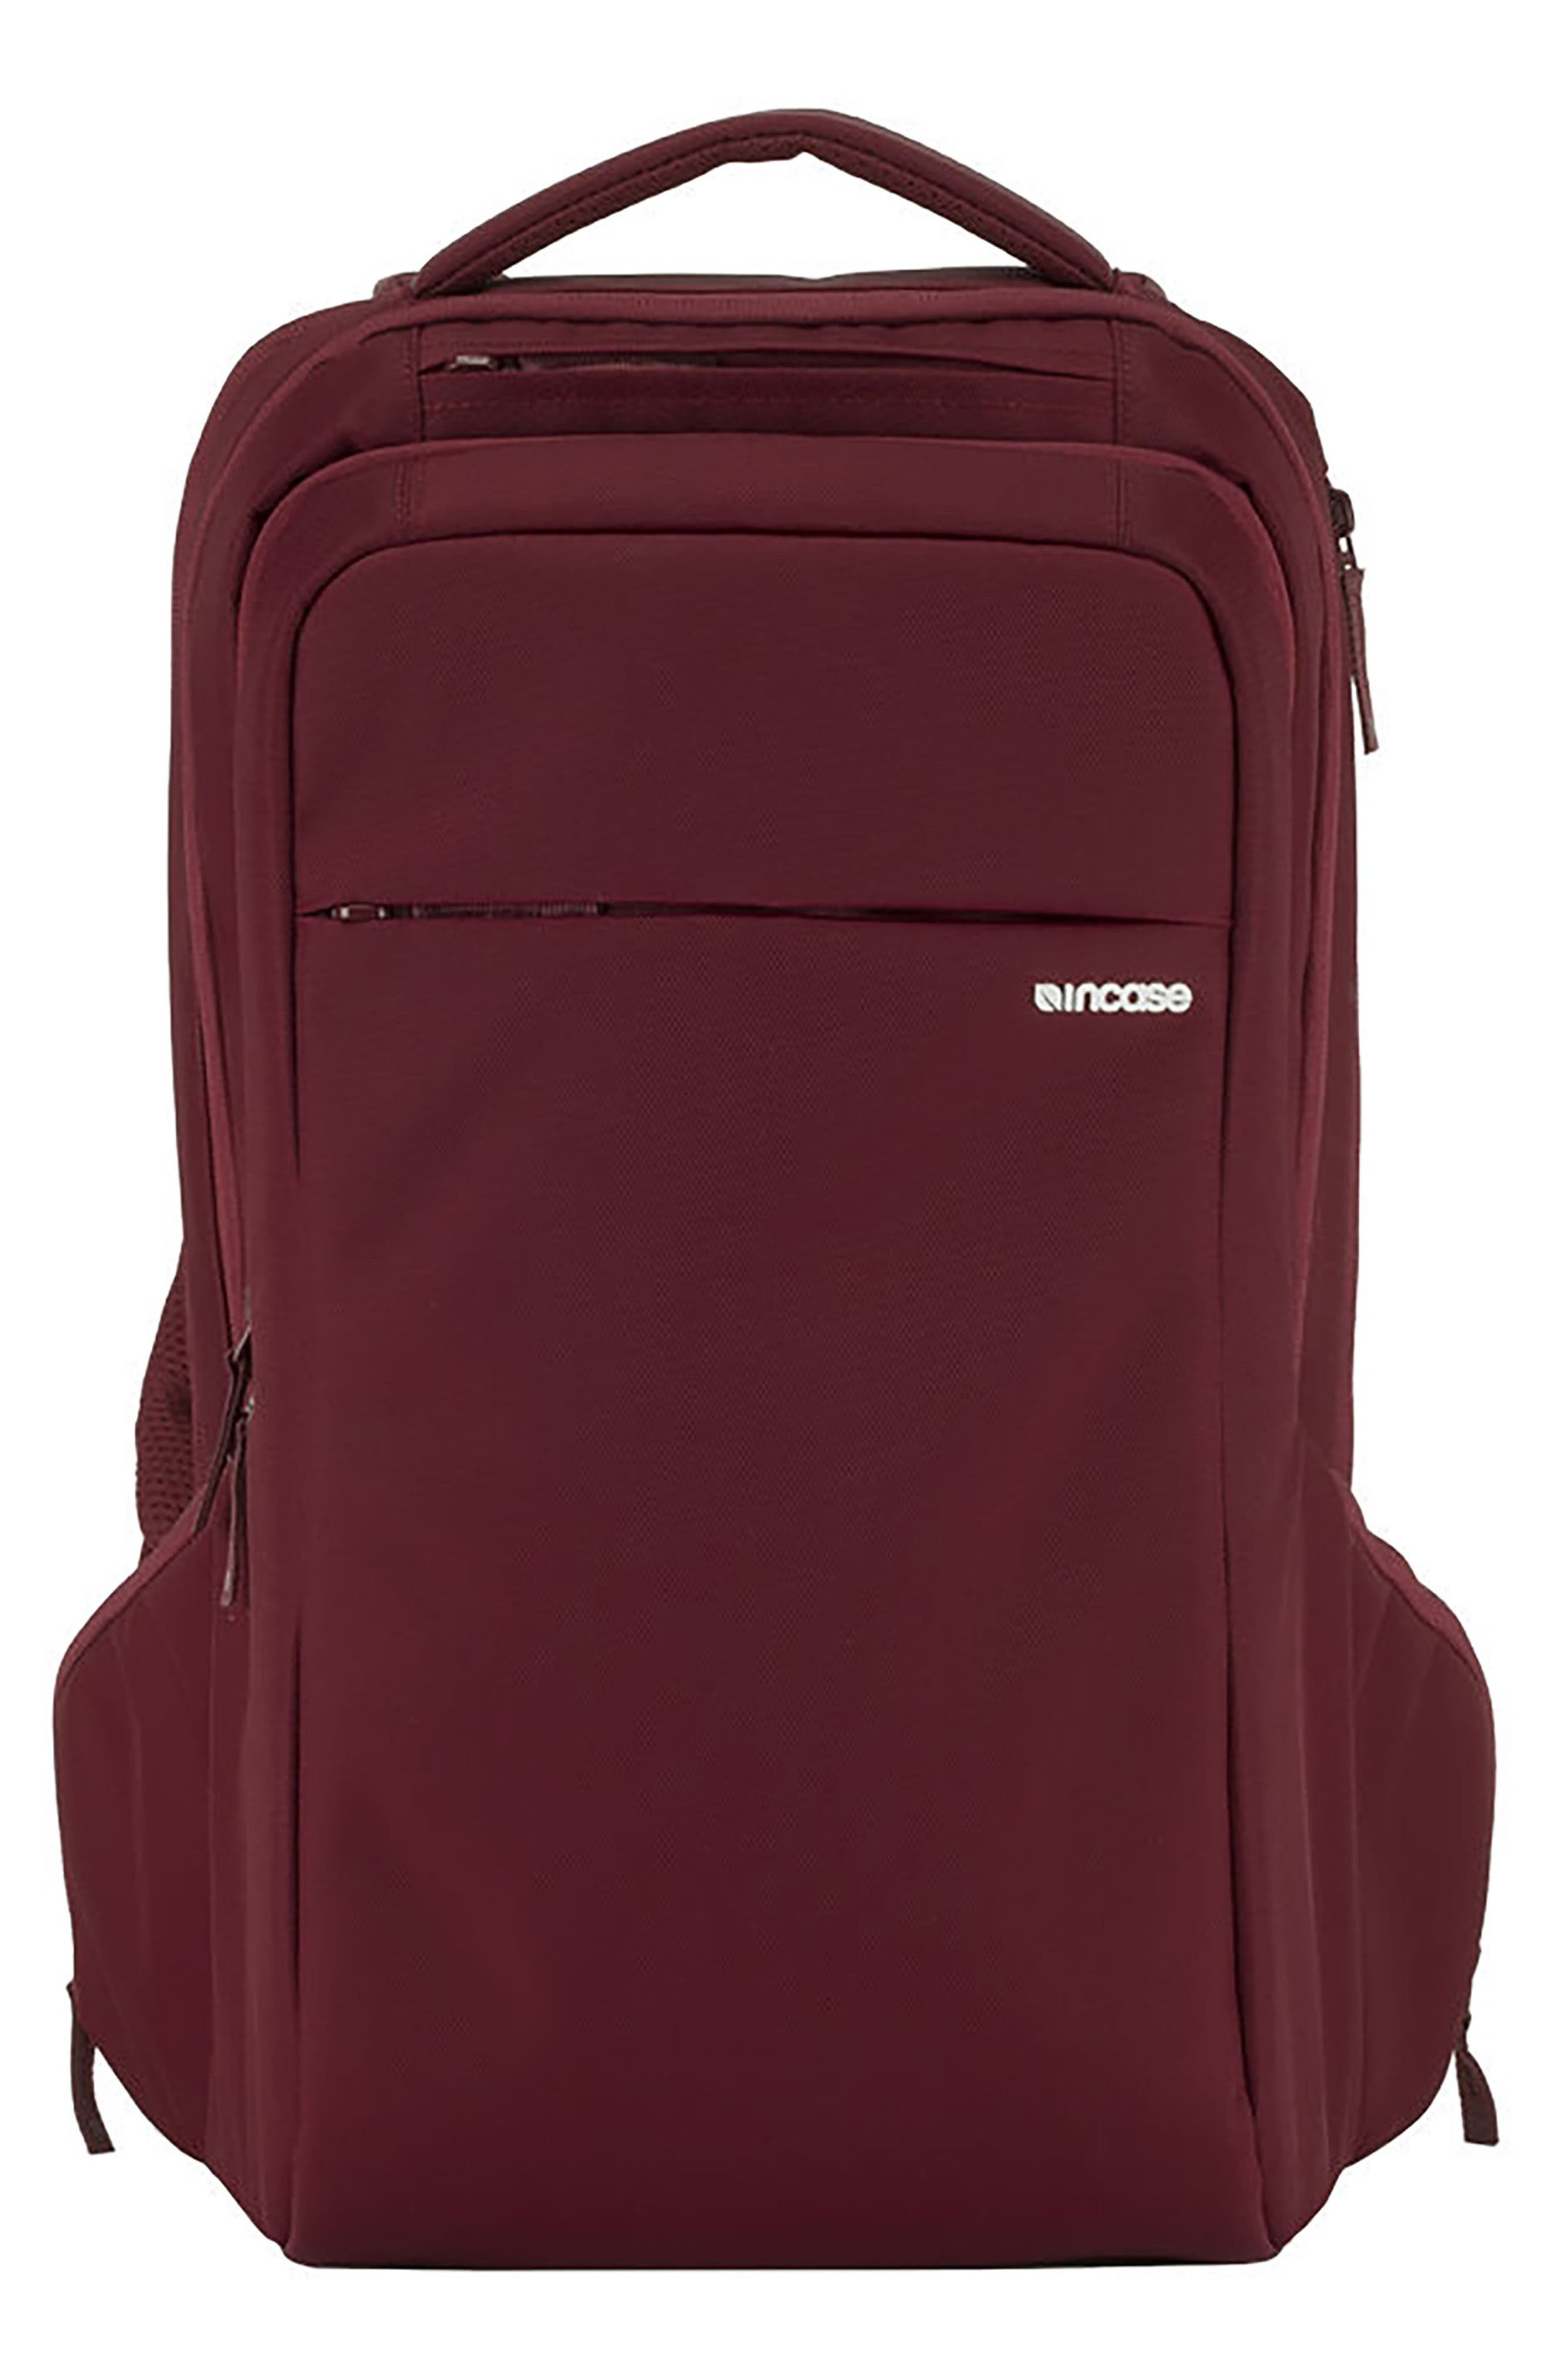 Incase Designs Icon Backpack